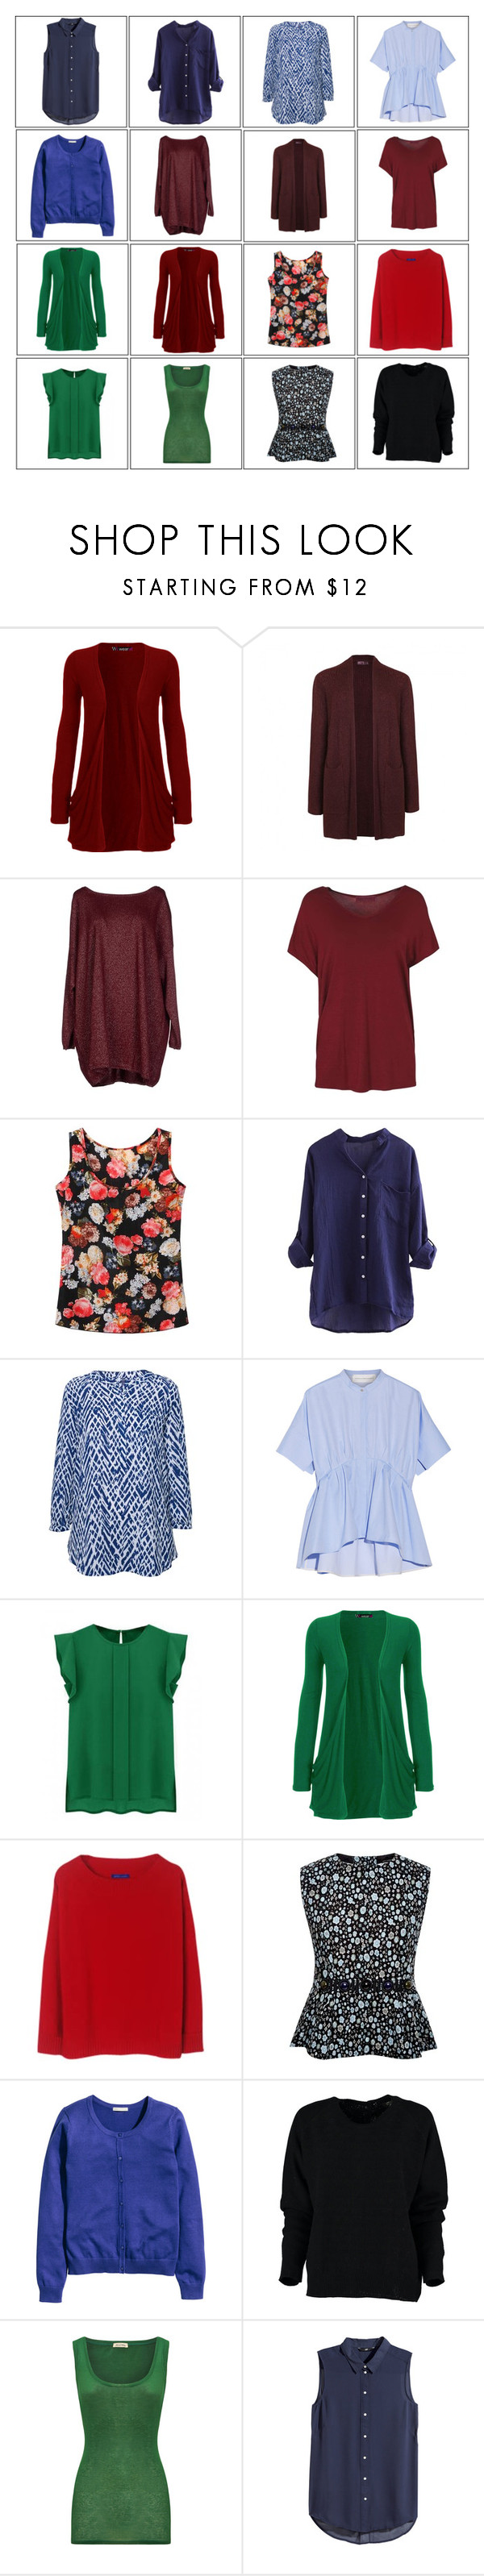 """""""4x4 basic 2"""" by kist-42 ❤ liked on Polyvore featuring WearAll, Ally Fashion, Blukey, NYDJ, Victoria, Victoria Beckham, Winser London, Marc Jacobs, American Vintage and H&M"""